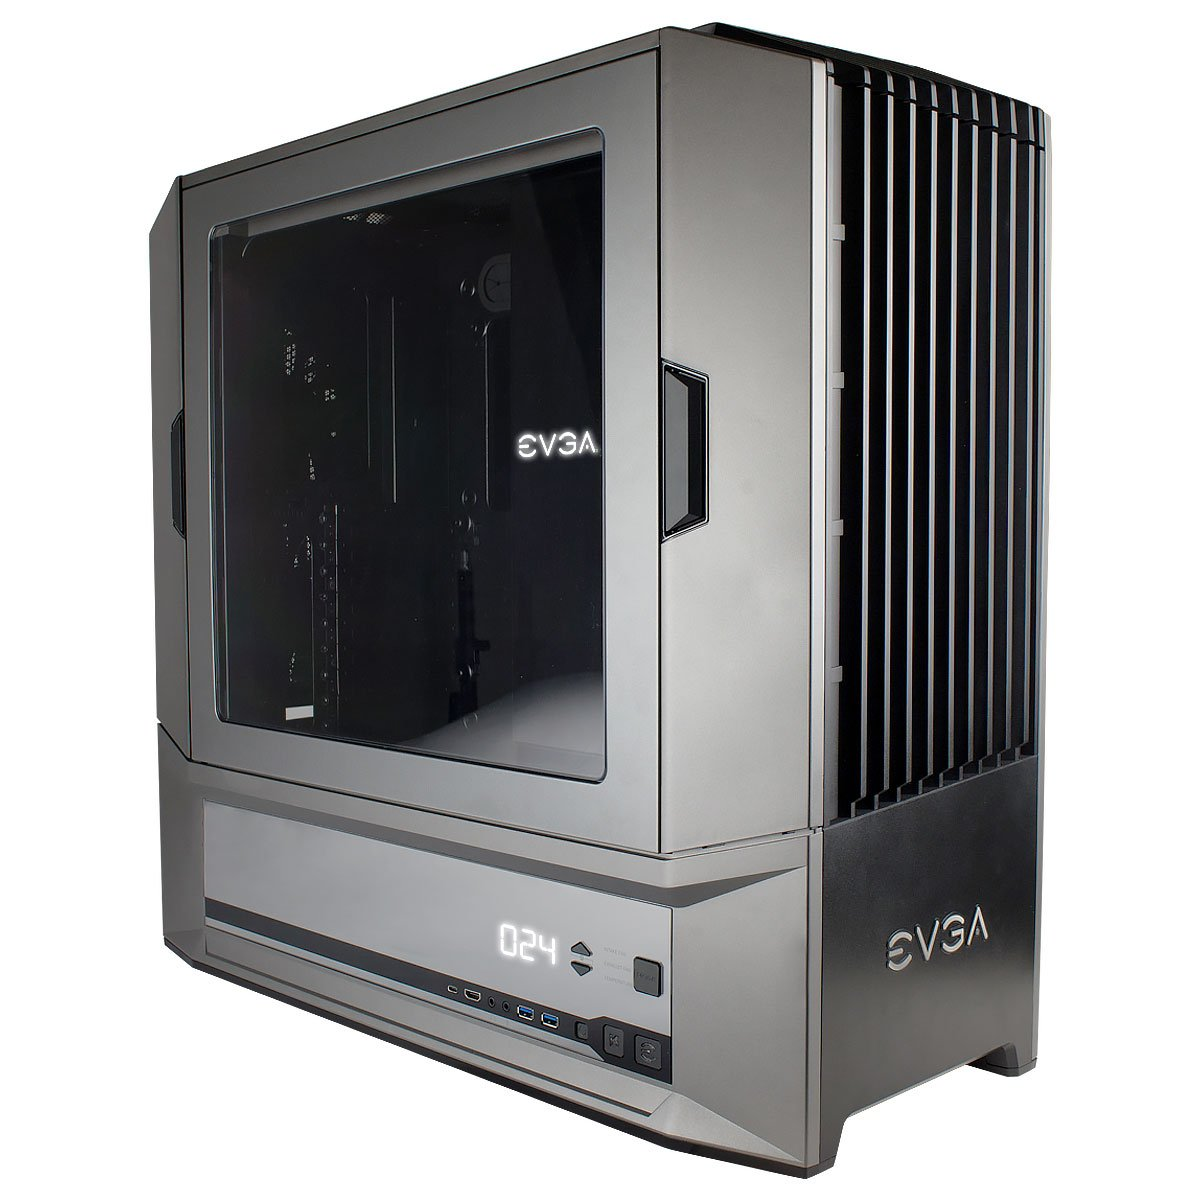 EVGA DG-87 Full Tower, K-Boost, Hardware Fan Controller, Gaming Case (100-E1-1236-K0)